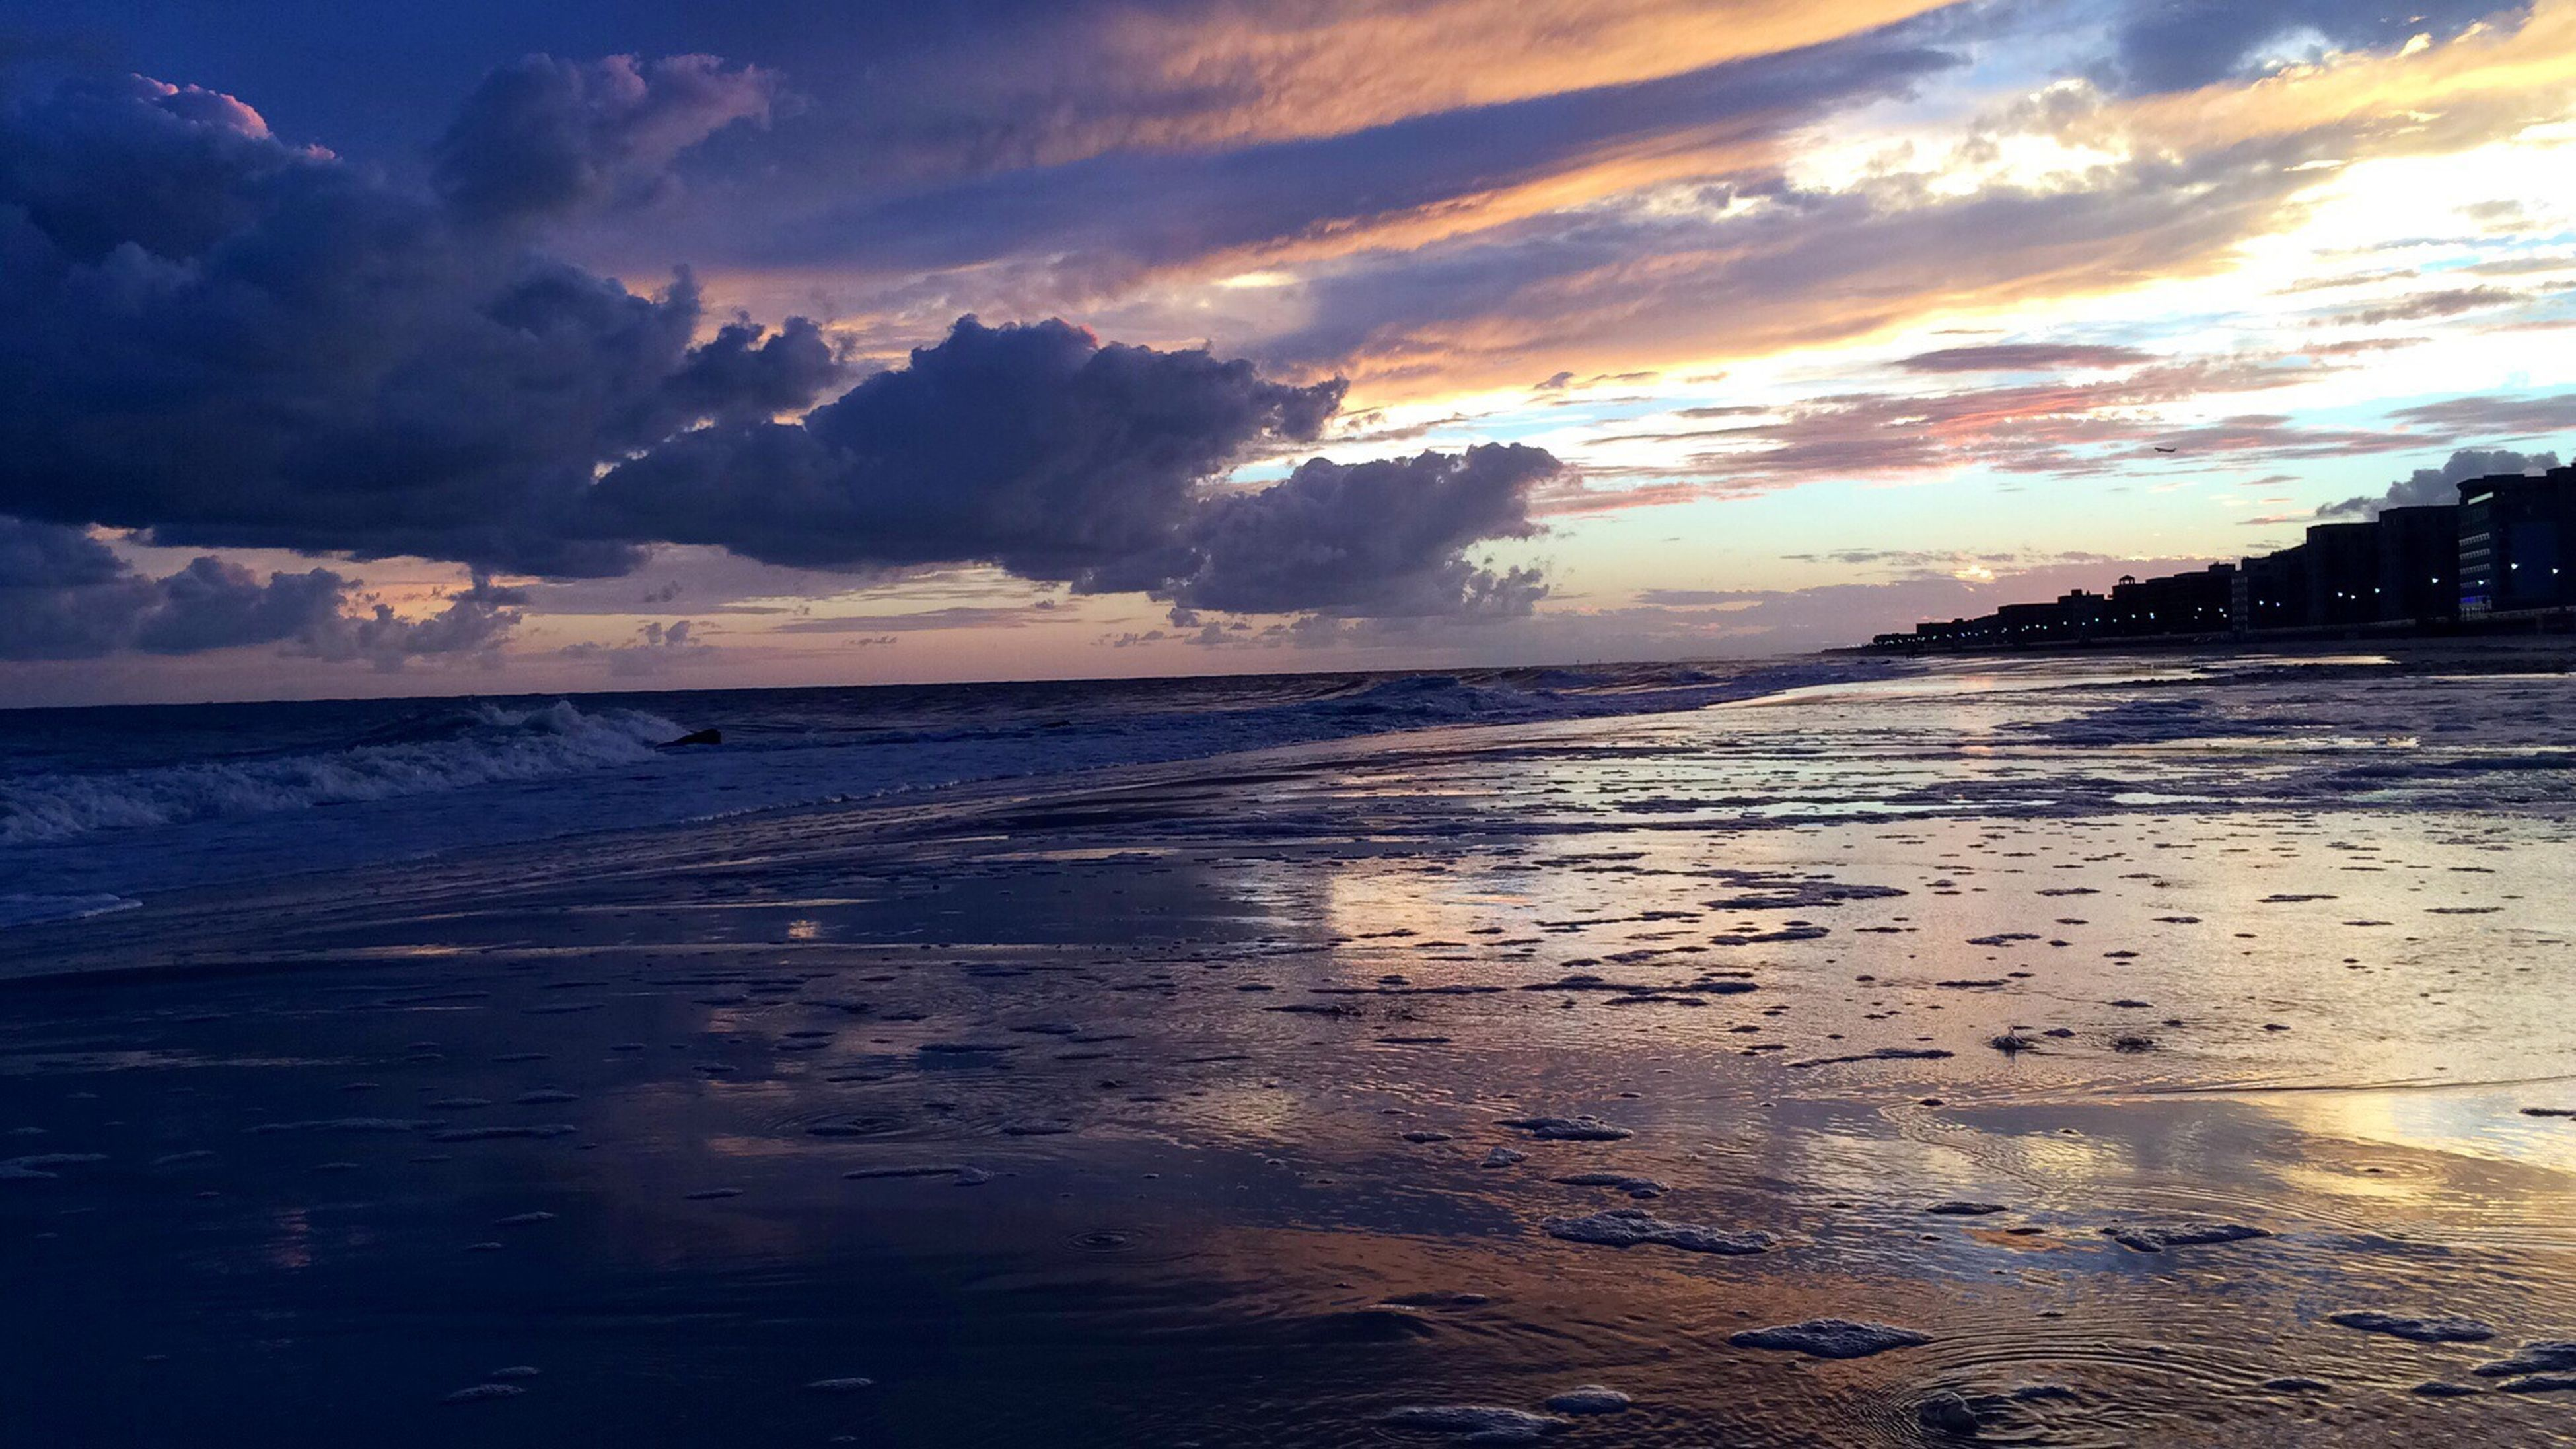 water, sea, beach, sunset, horizon over water, sky, scenics, tranquil scene, shore, beauty in nature, tranquility, cloud - sky, reflection, sand, nature, idyllic, wave, cloud, coastline, dusk